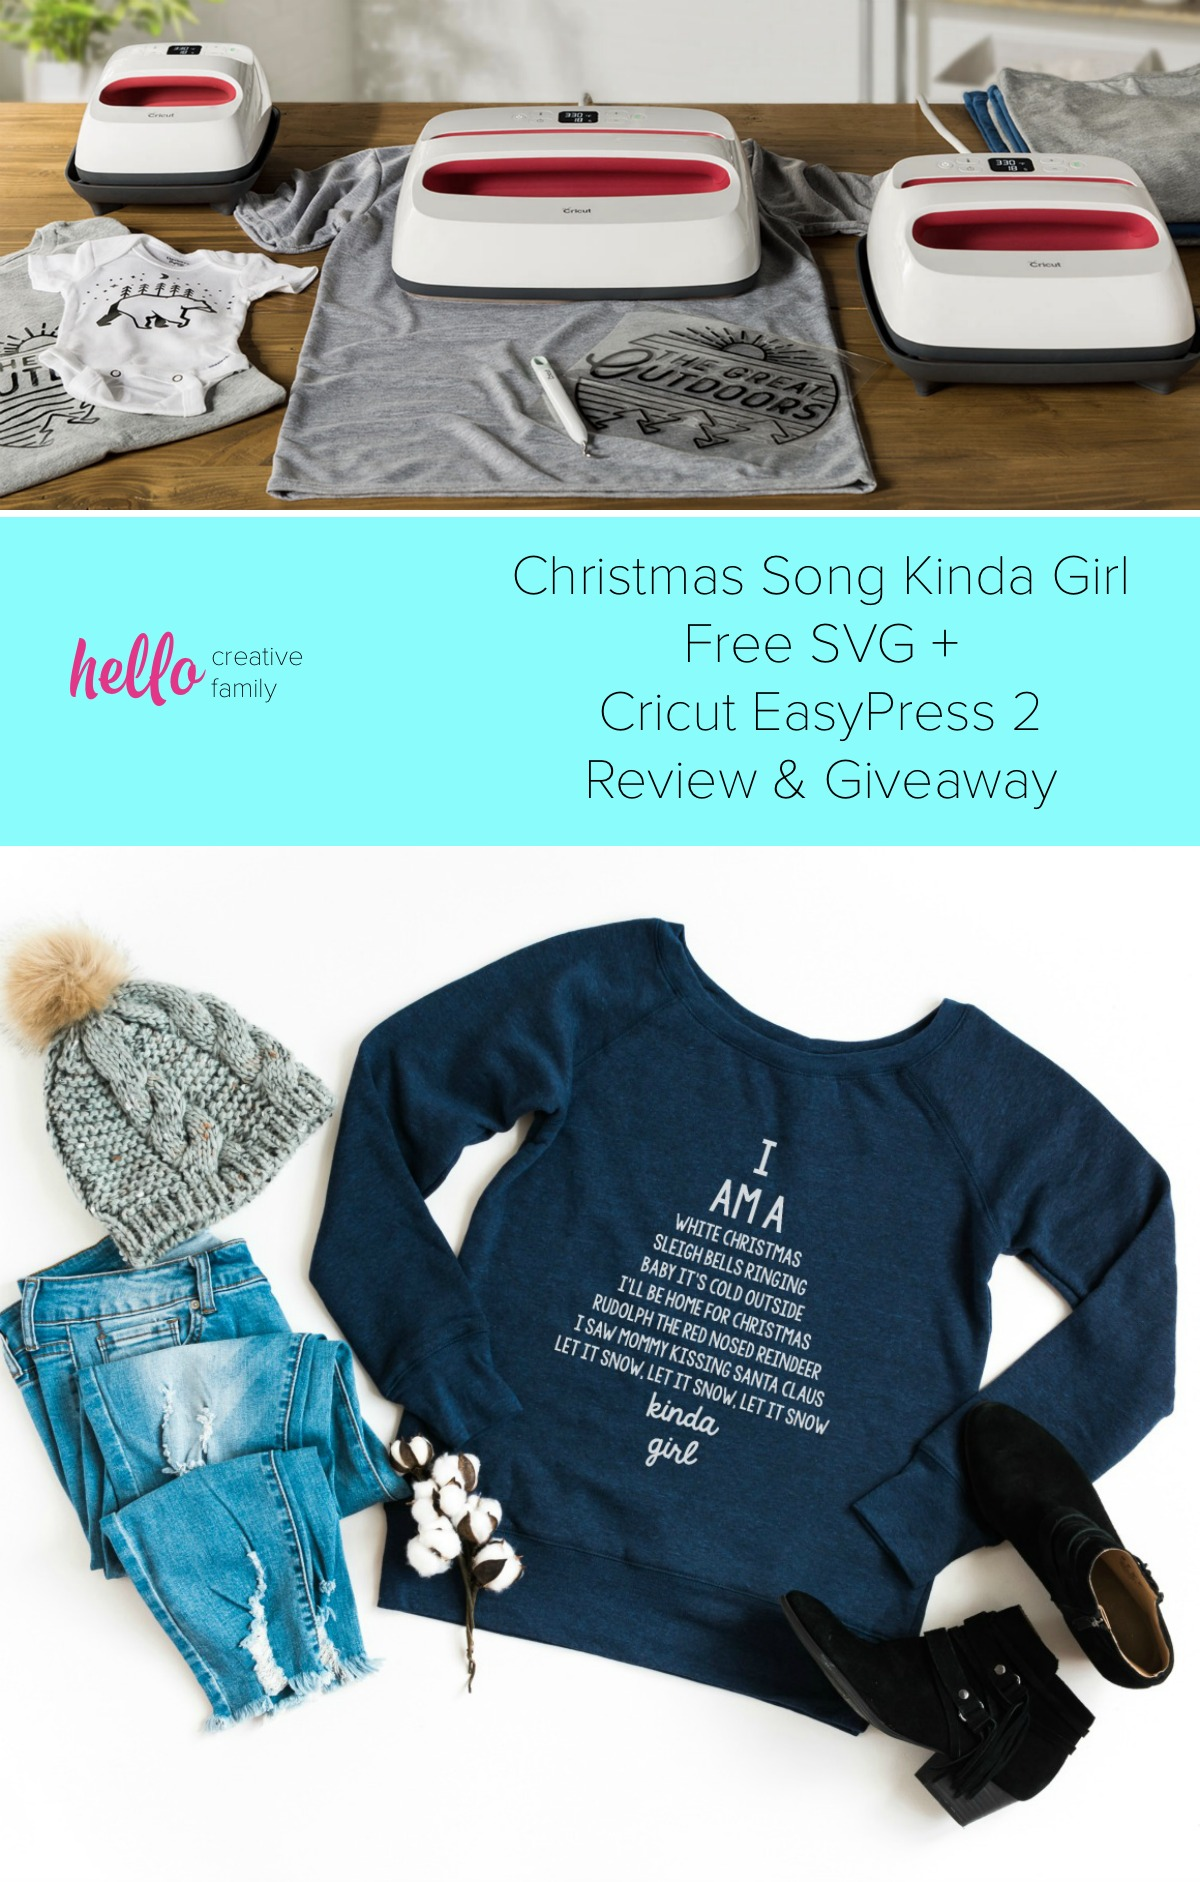 """We're sharing 16 Free Christmas SVG Files including our very own """"I am a Christmas Song Kinda Girl"""" cut file. Also check out our review for the Cricut Easy Press 2 which makes applying HTV for custom shirts and handmade gifts easy! #Cricut #FreeSVG #ChristmasSongs #ChristmasCutFiles #ChristmasSVG"""